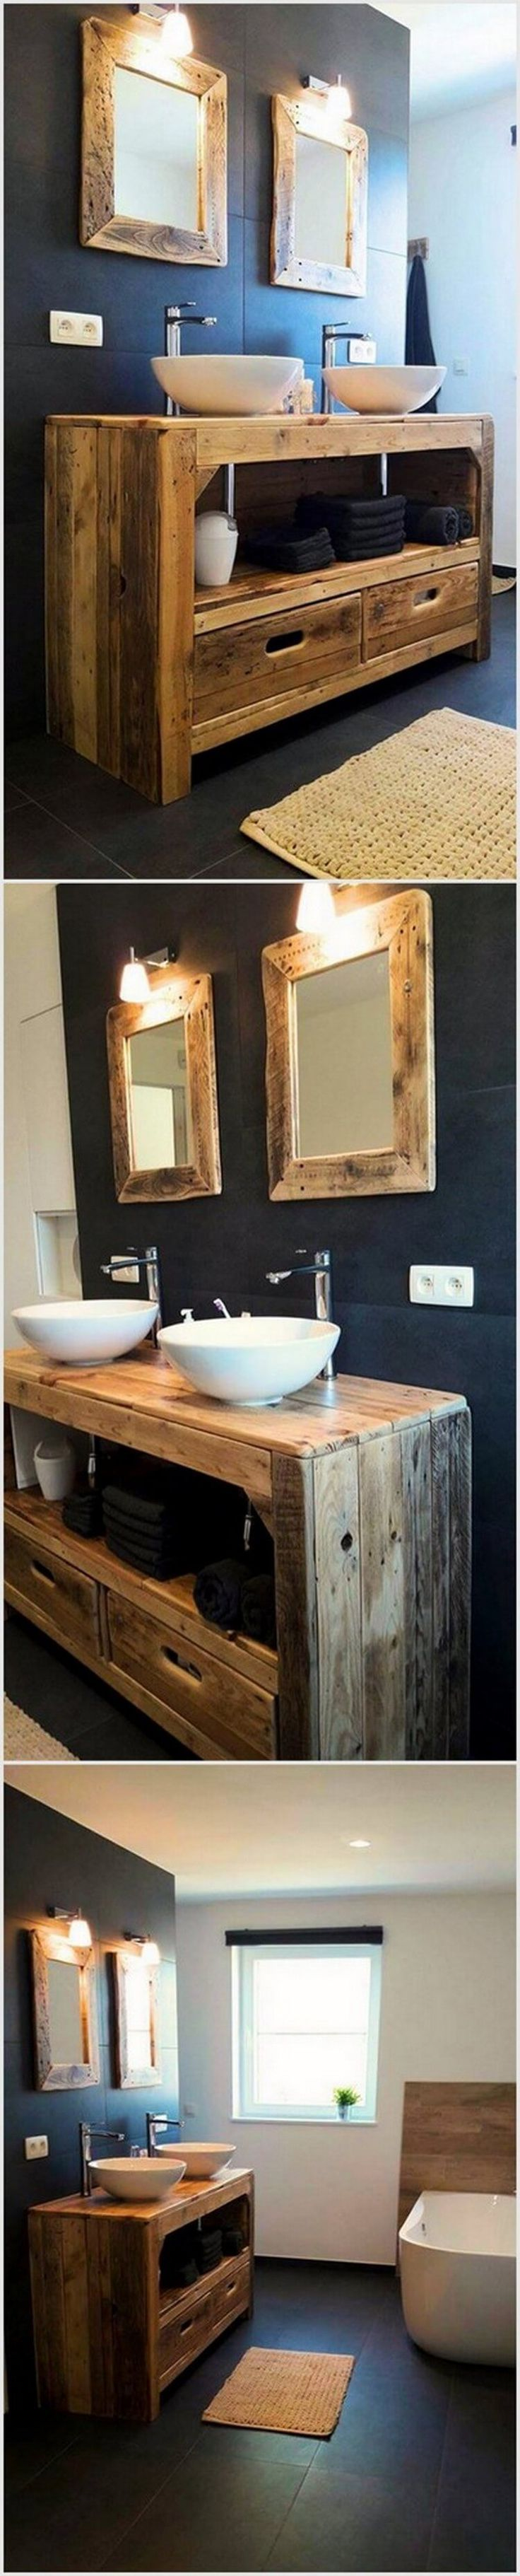 Shocking Recycling Ideas For Shipping Wood Pallets Stuff To Try - Pallet ideas for bathroom